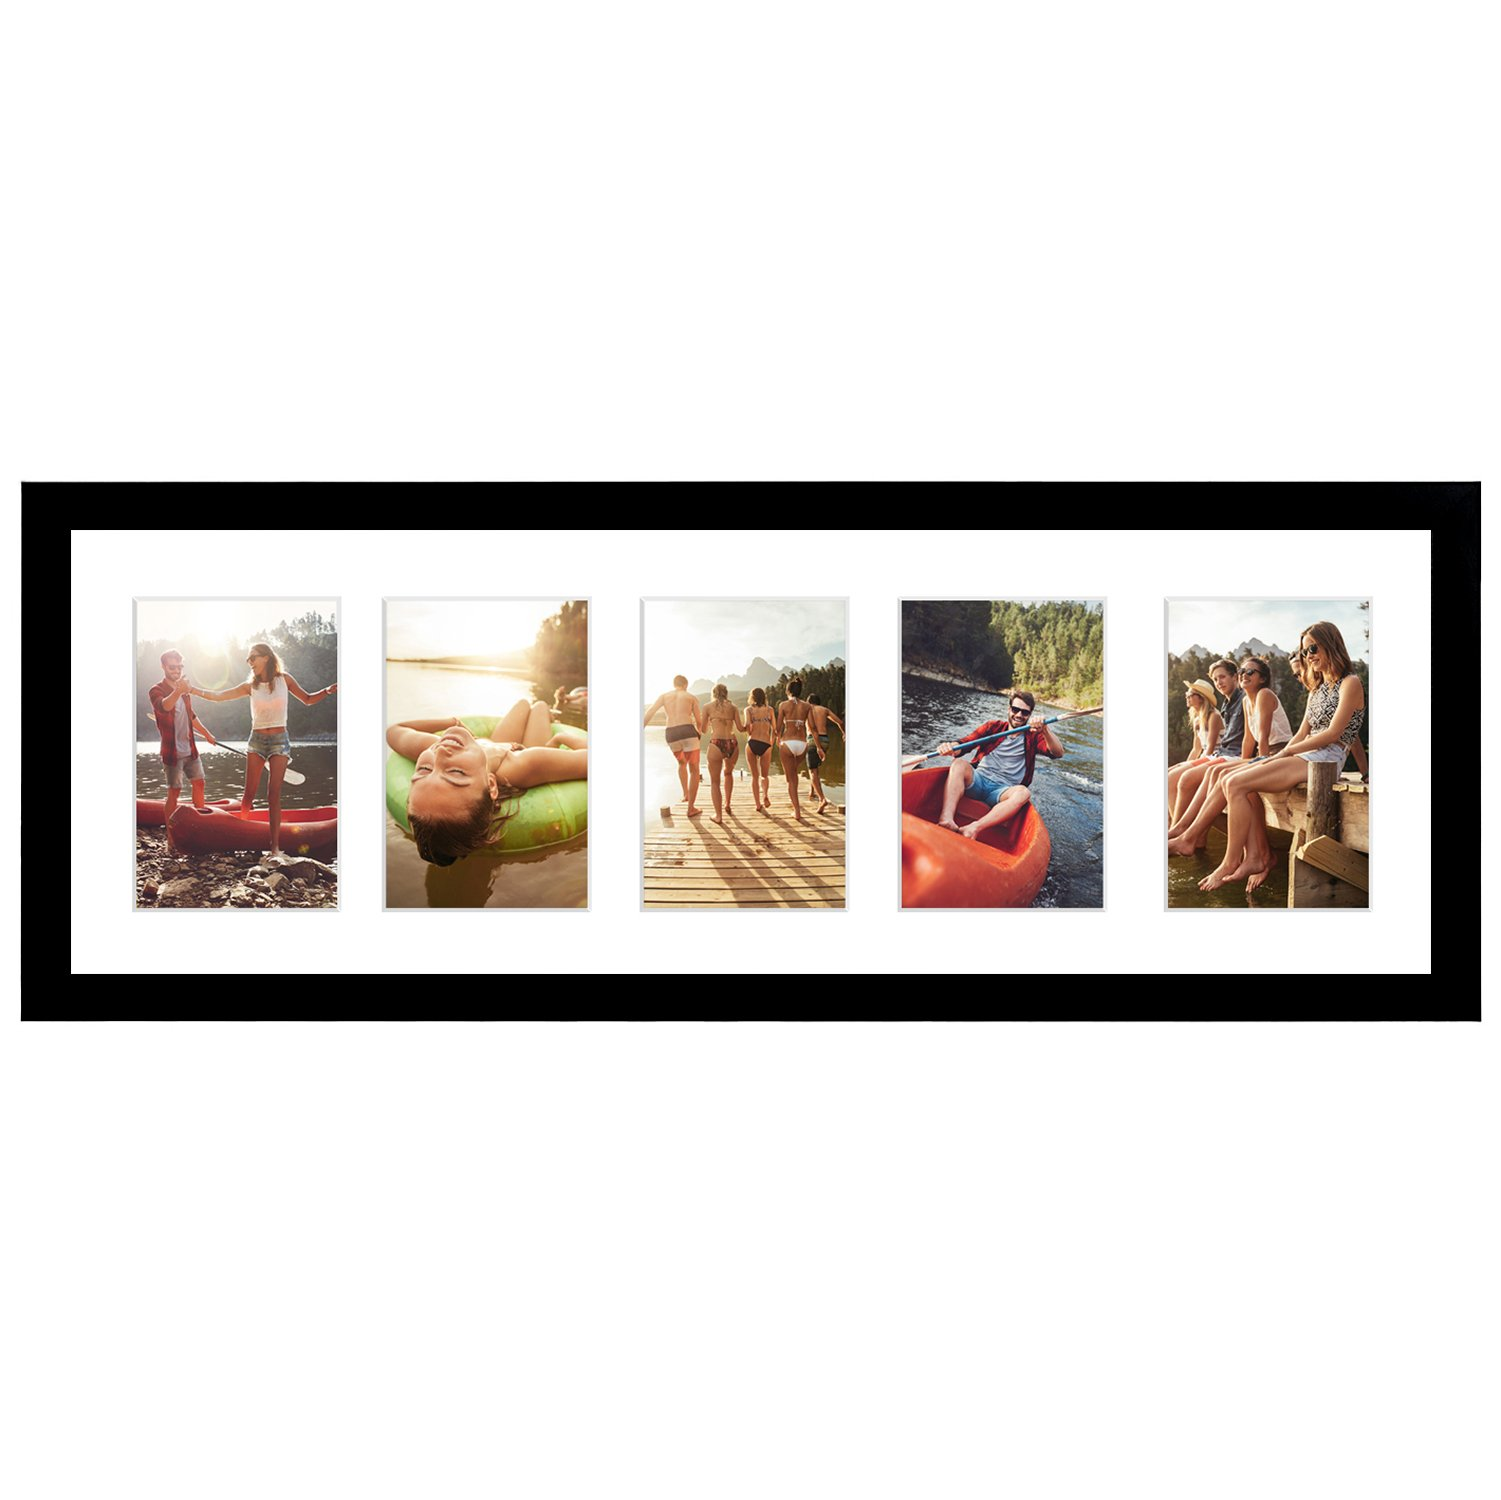 Americanflat 8x24 Black Collage Picture Frame - 5 Openings - Display 4x6 Photos - Panorama Frame by Americanflat